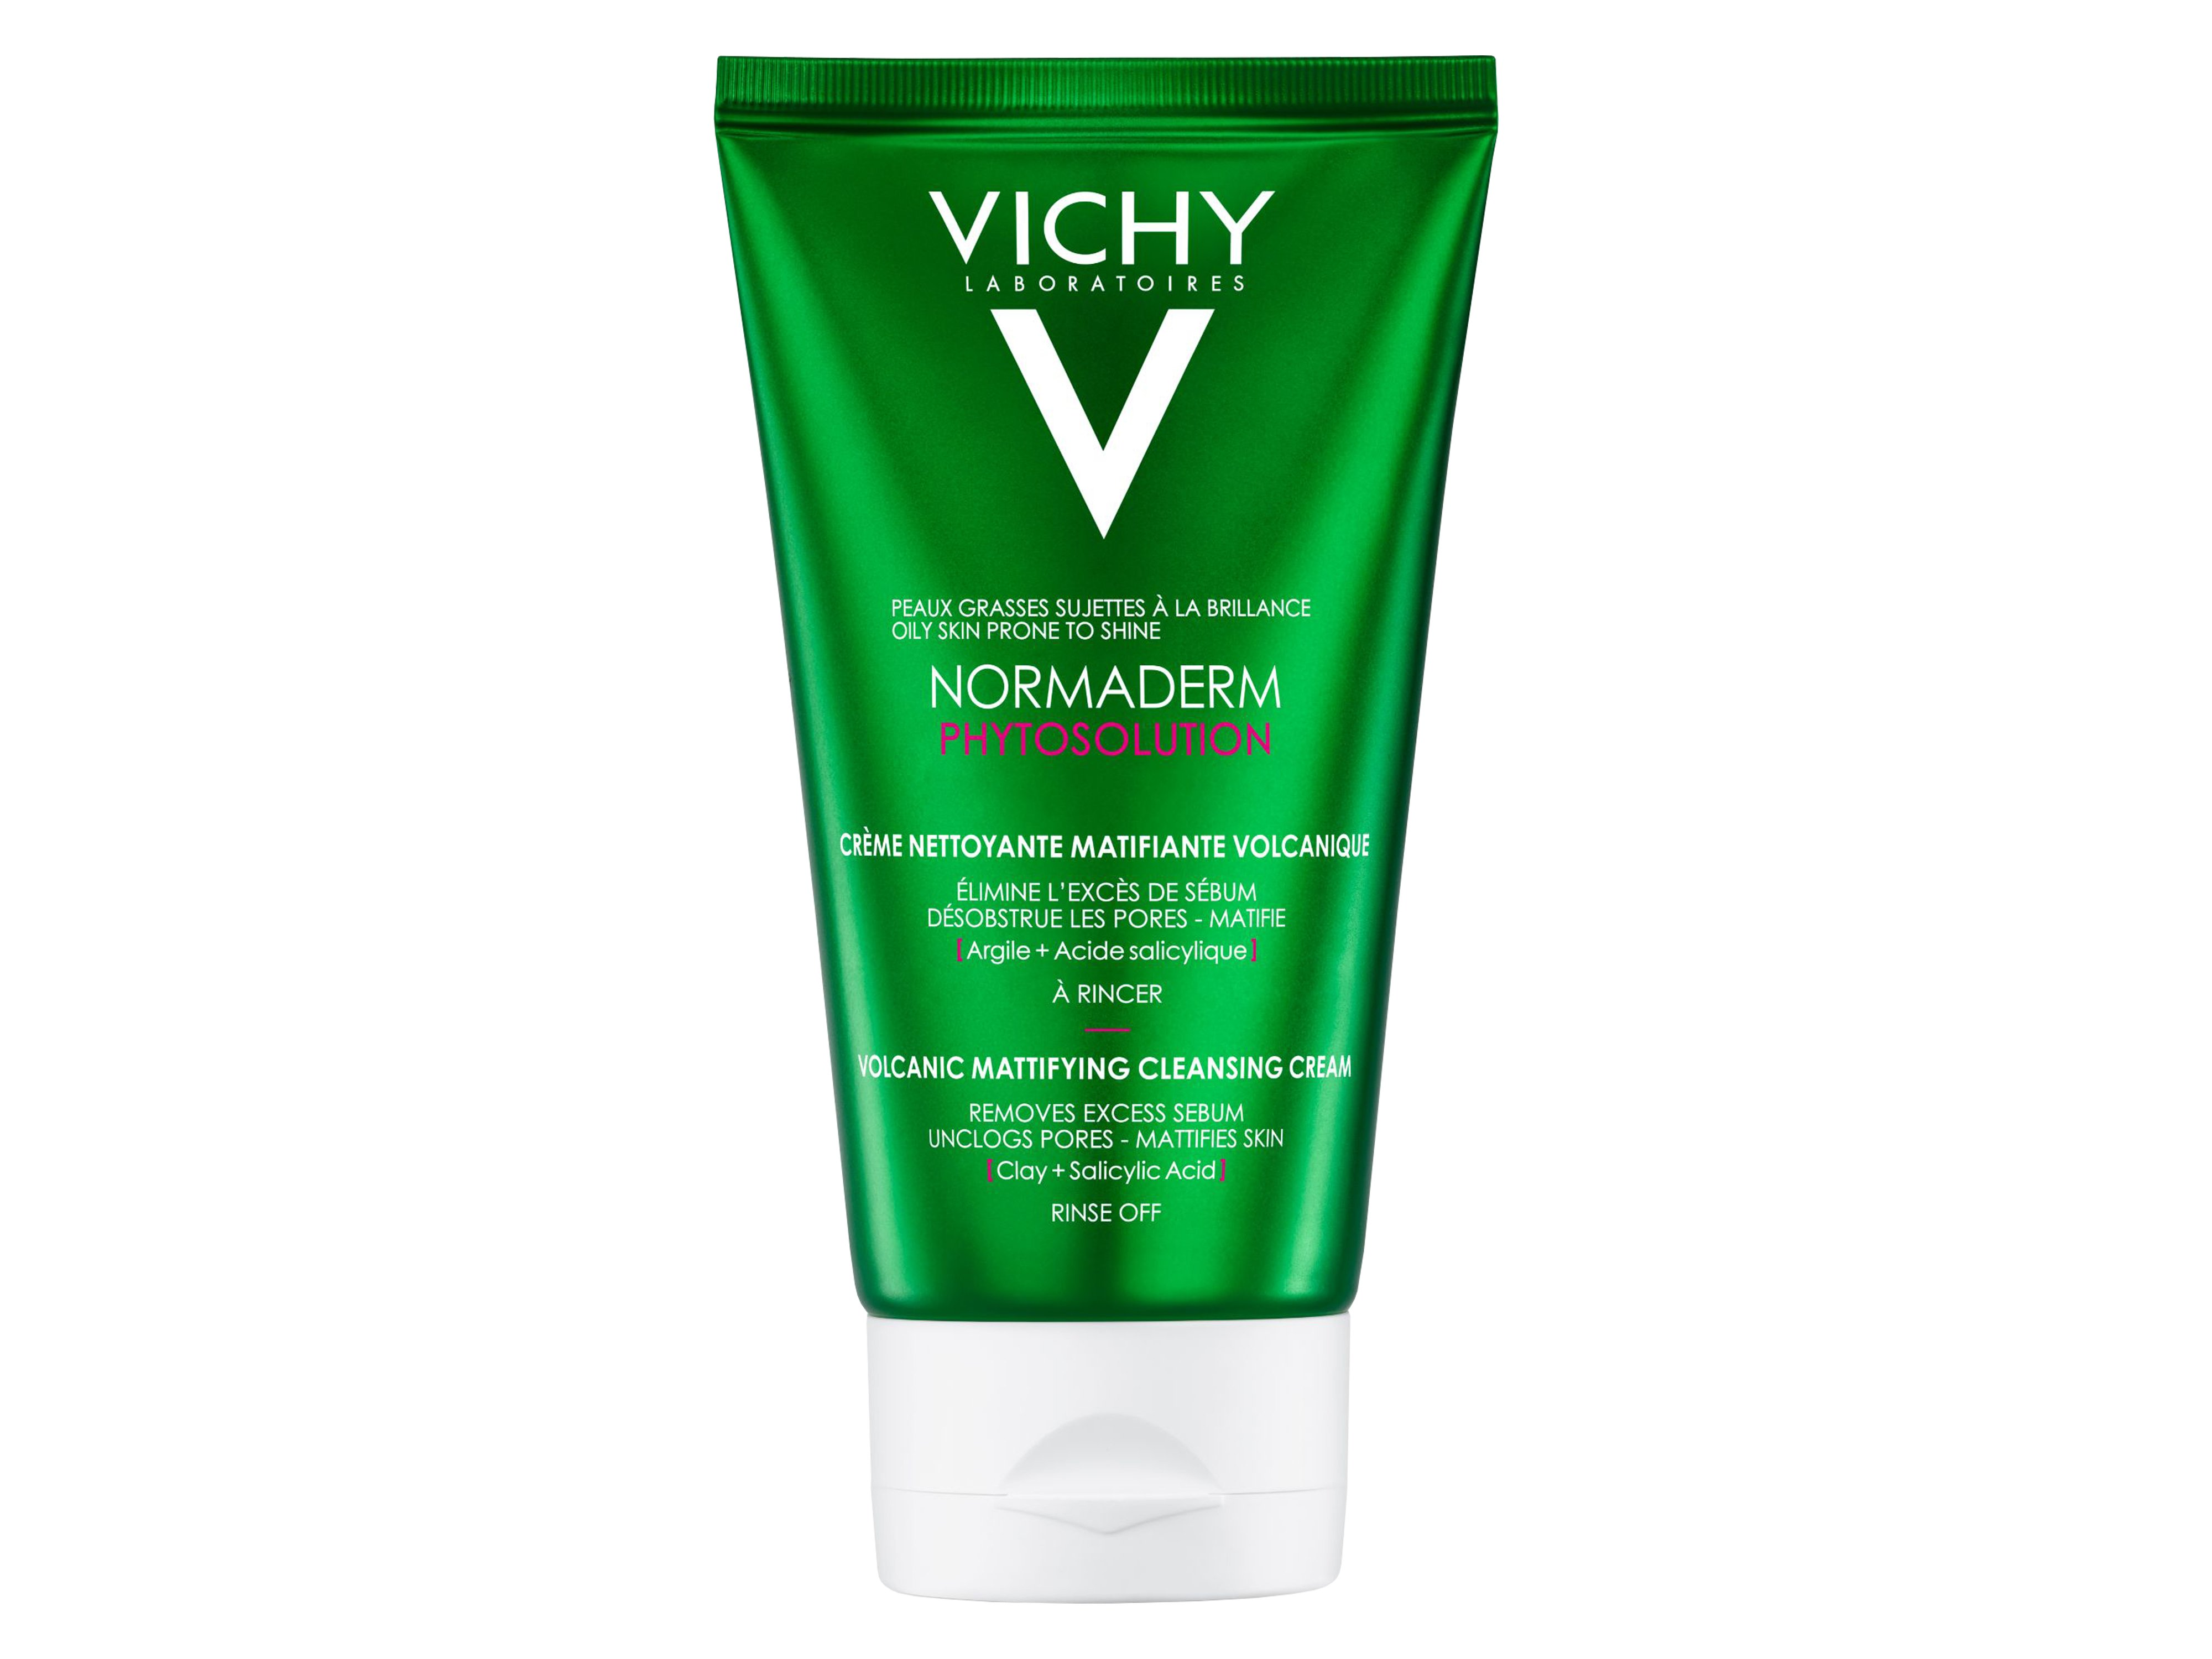 Vichy Normaderm Phytosolution Volcanic Matiifying Cleanser, 125 ml